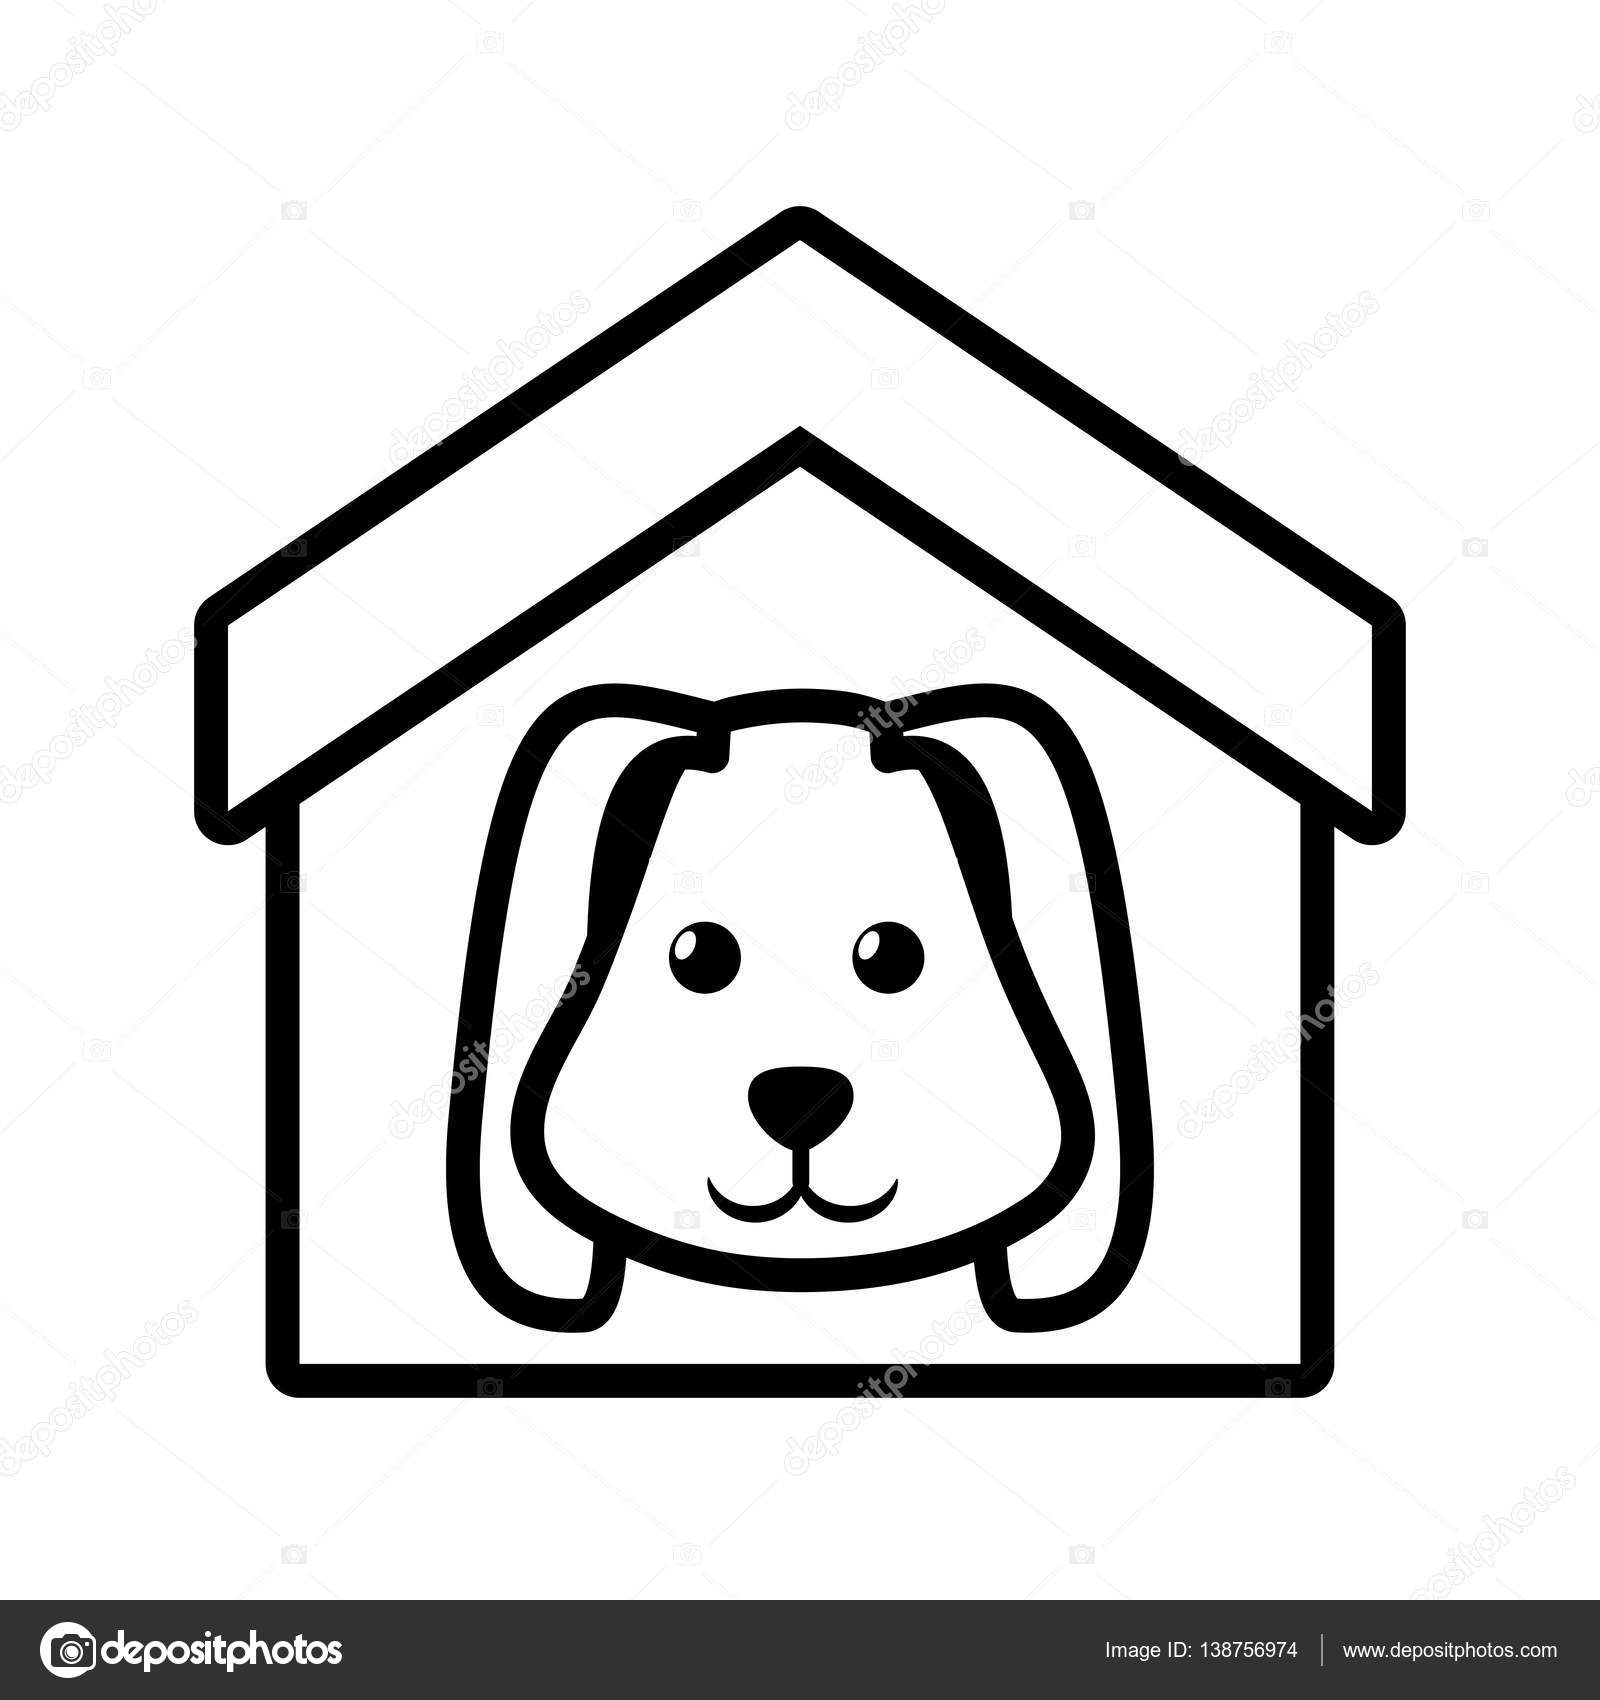 Type A Dog House Plans likewise Plan details furthermore Easy Dog House Plans in addition Central Manor Apartments 136 Fairview Ave daytona Beach fl 32114 555415 likewise Boarding House Floor Plans. on house plans dog kennel